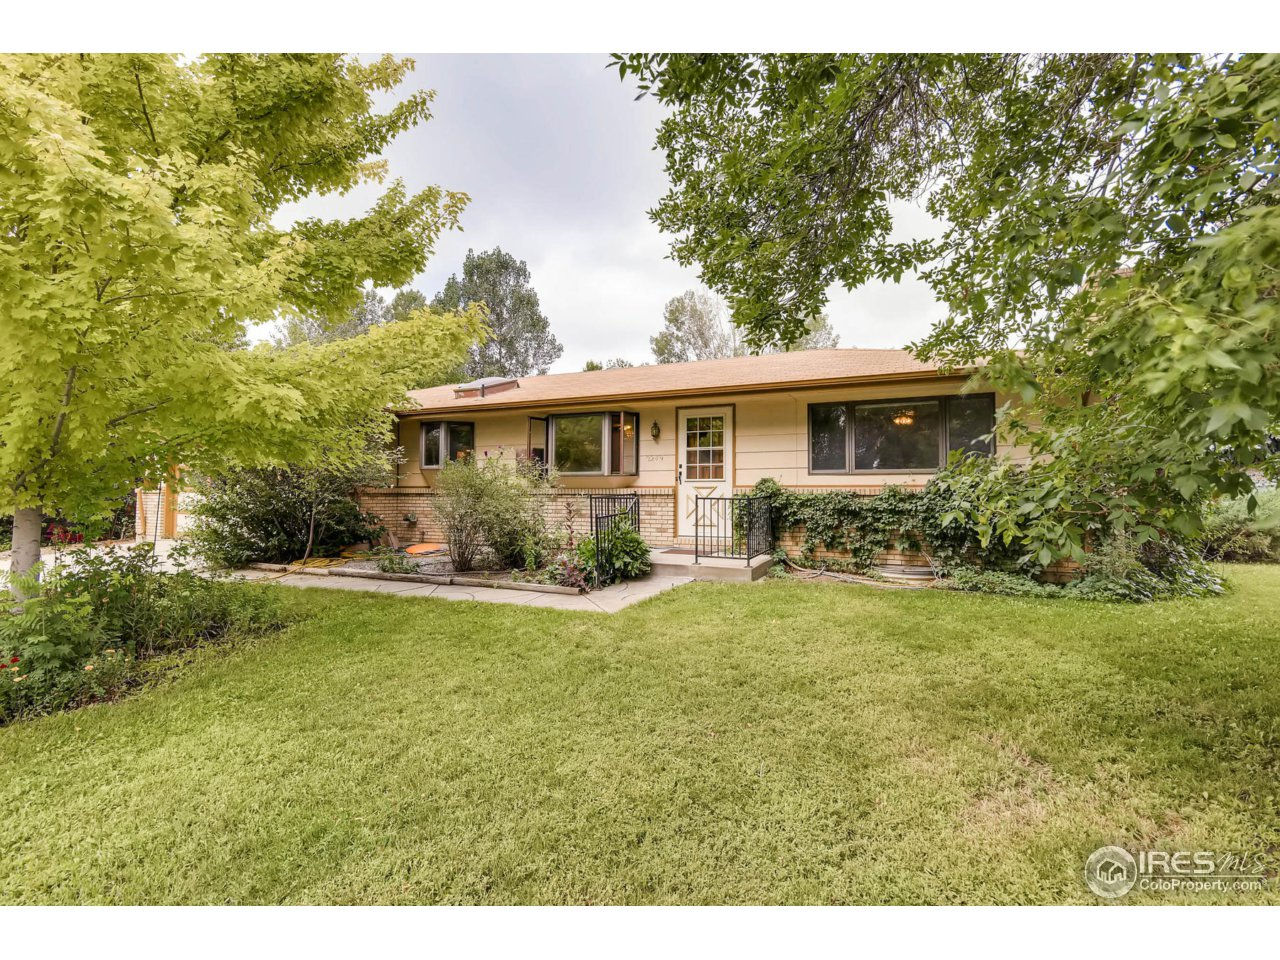 2249 Jewel St, Longmont, CO 80501